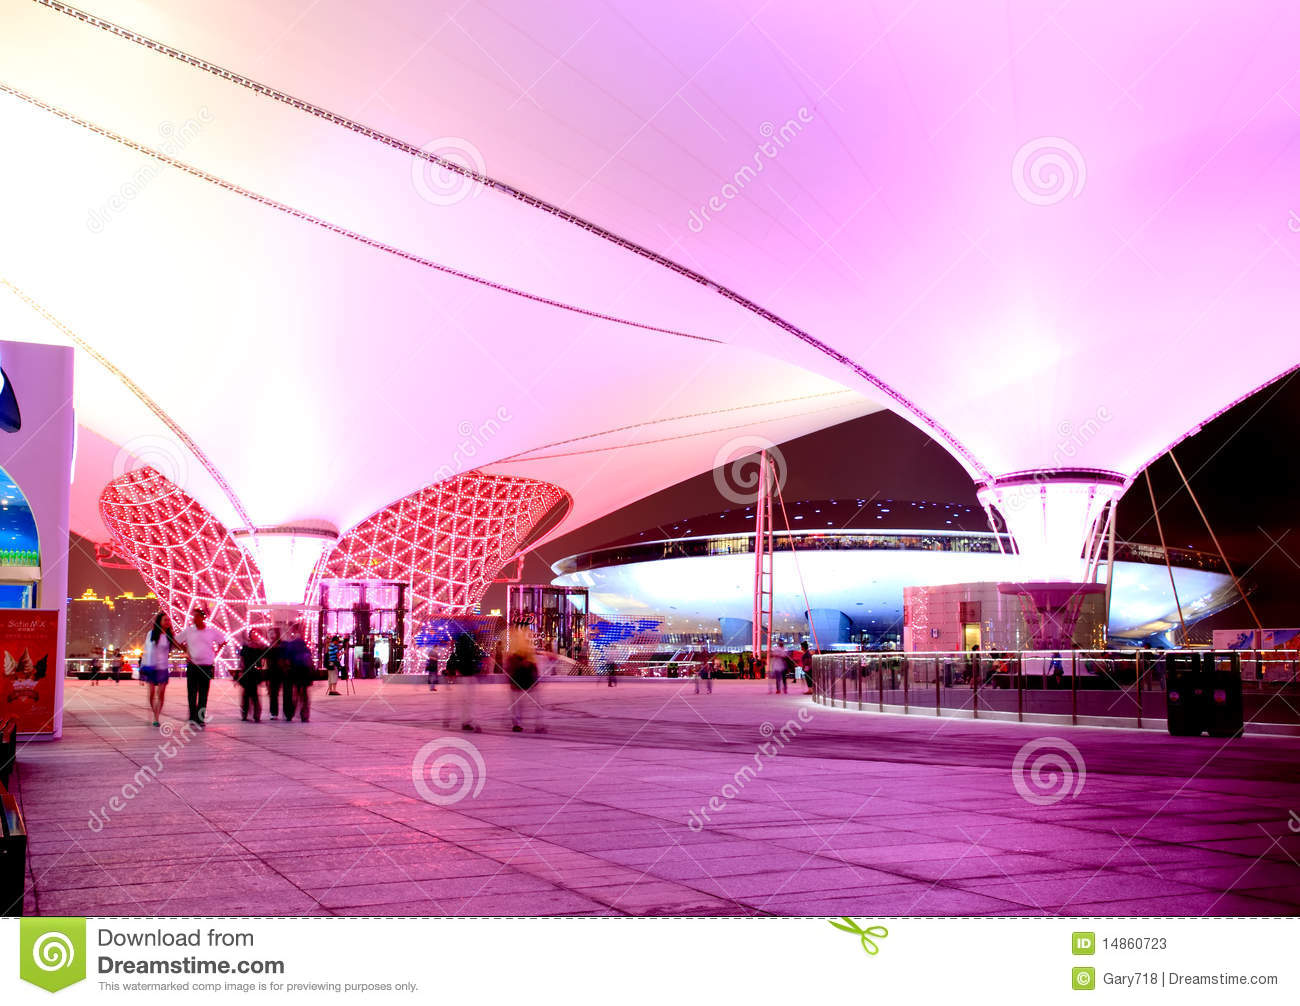 The Expo Boulevard at World Expo in Shanghai